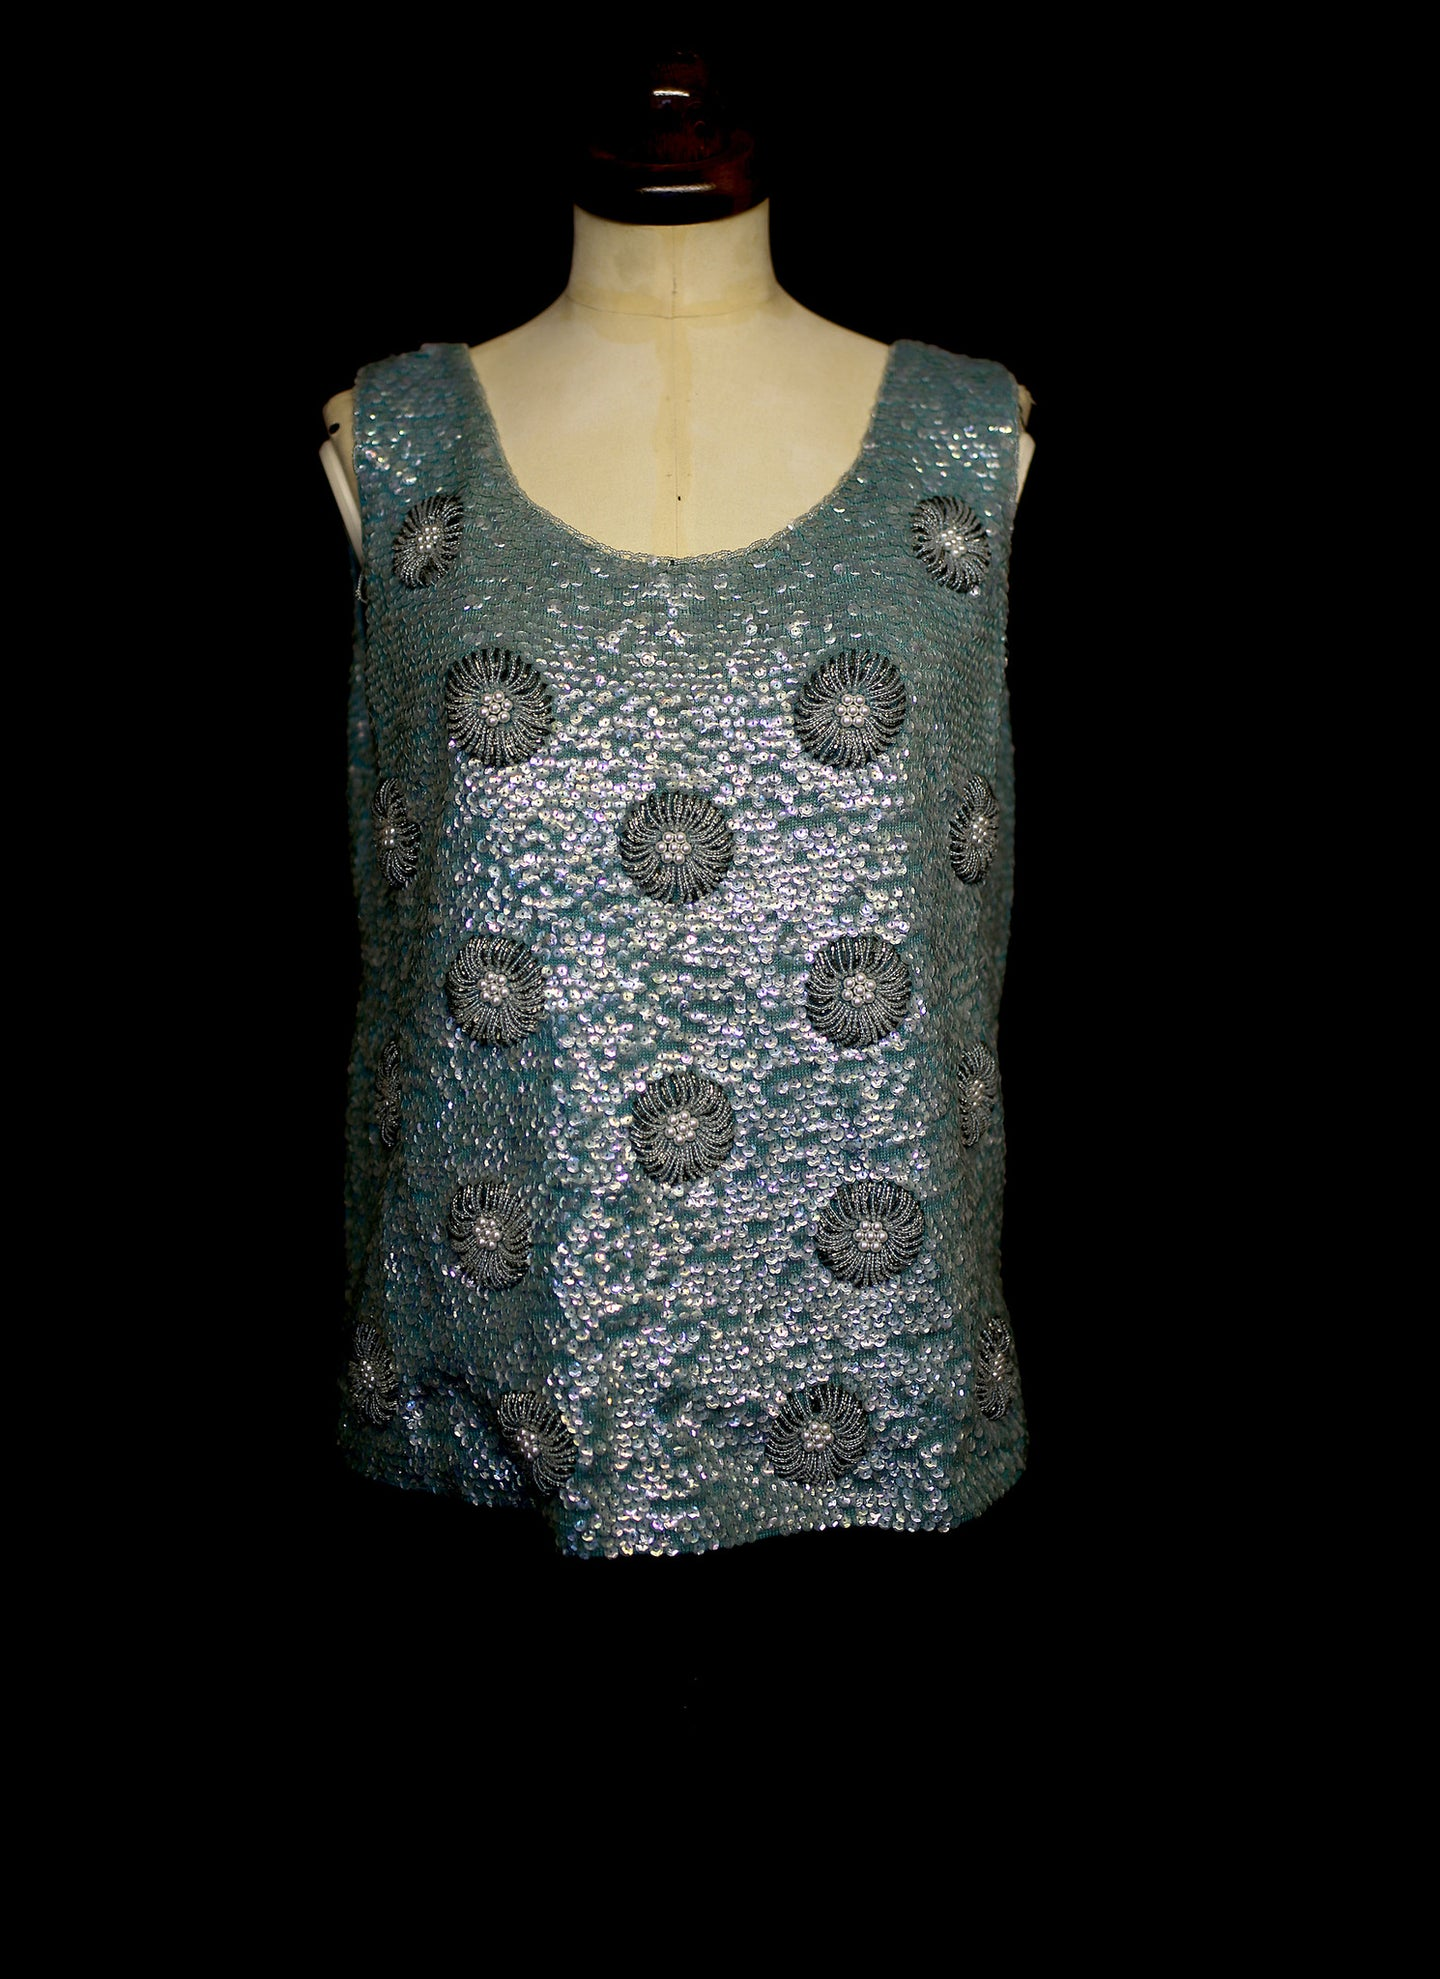 Vintage 1960s Blue Floral Sequin Top